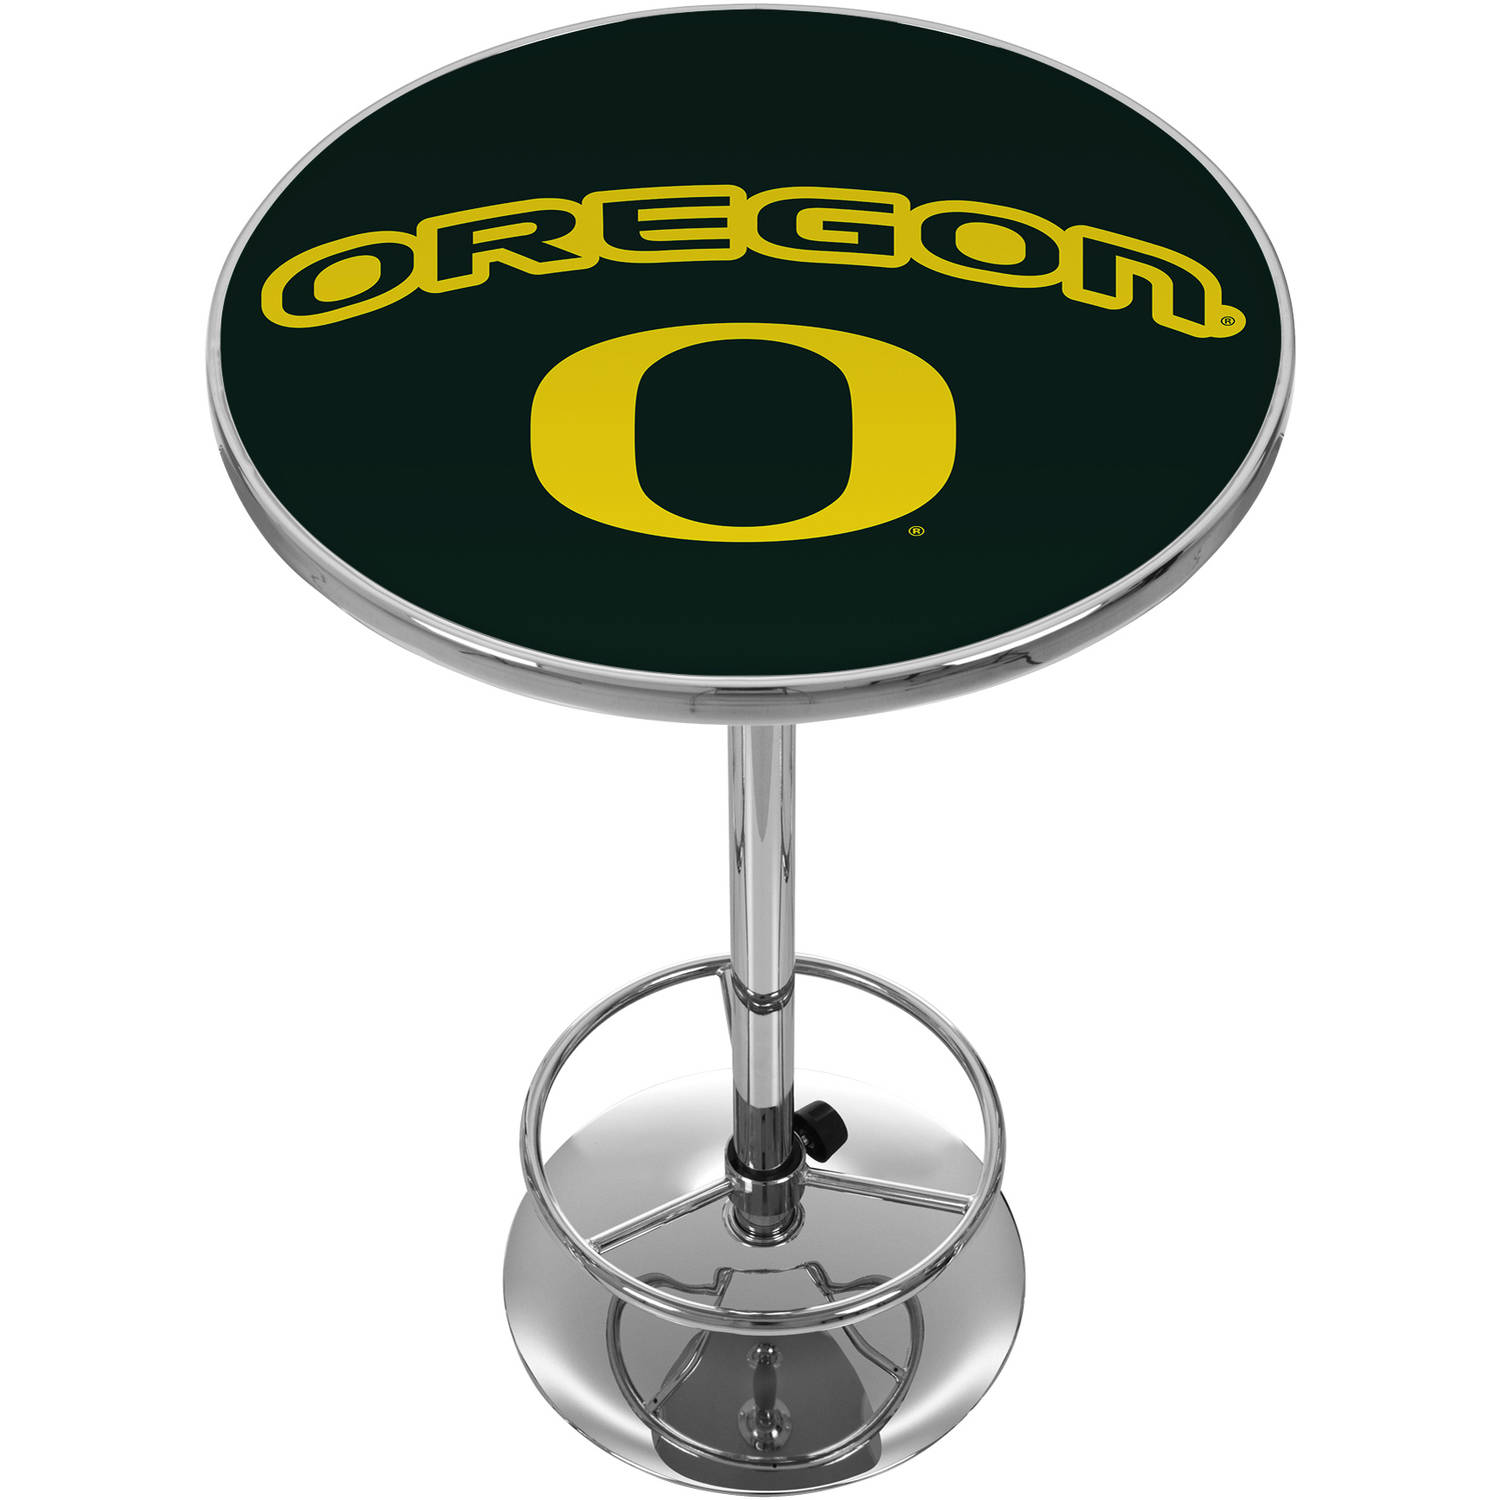 University of Oregon Chrome Pub Table